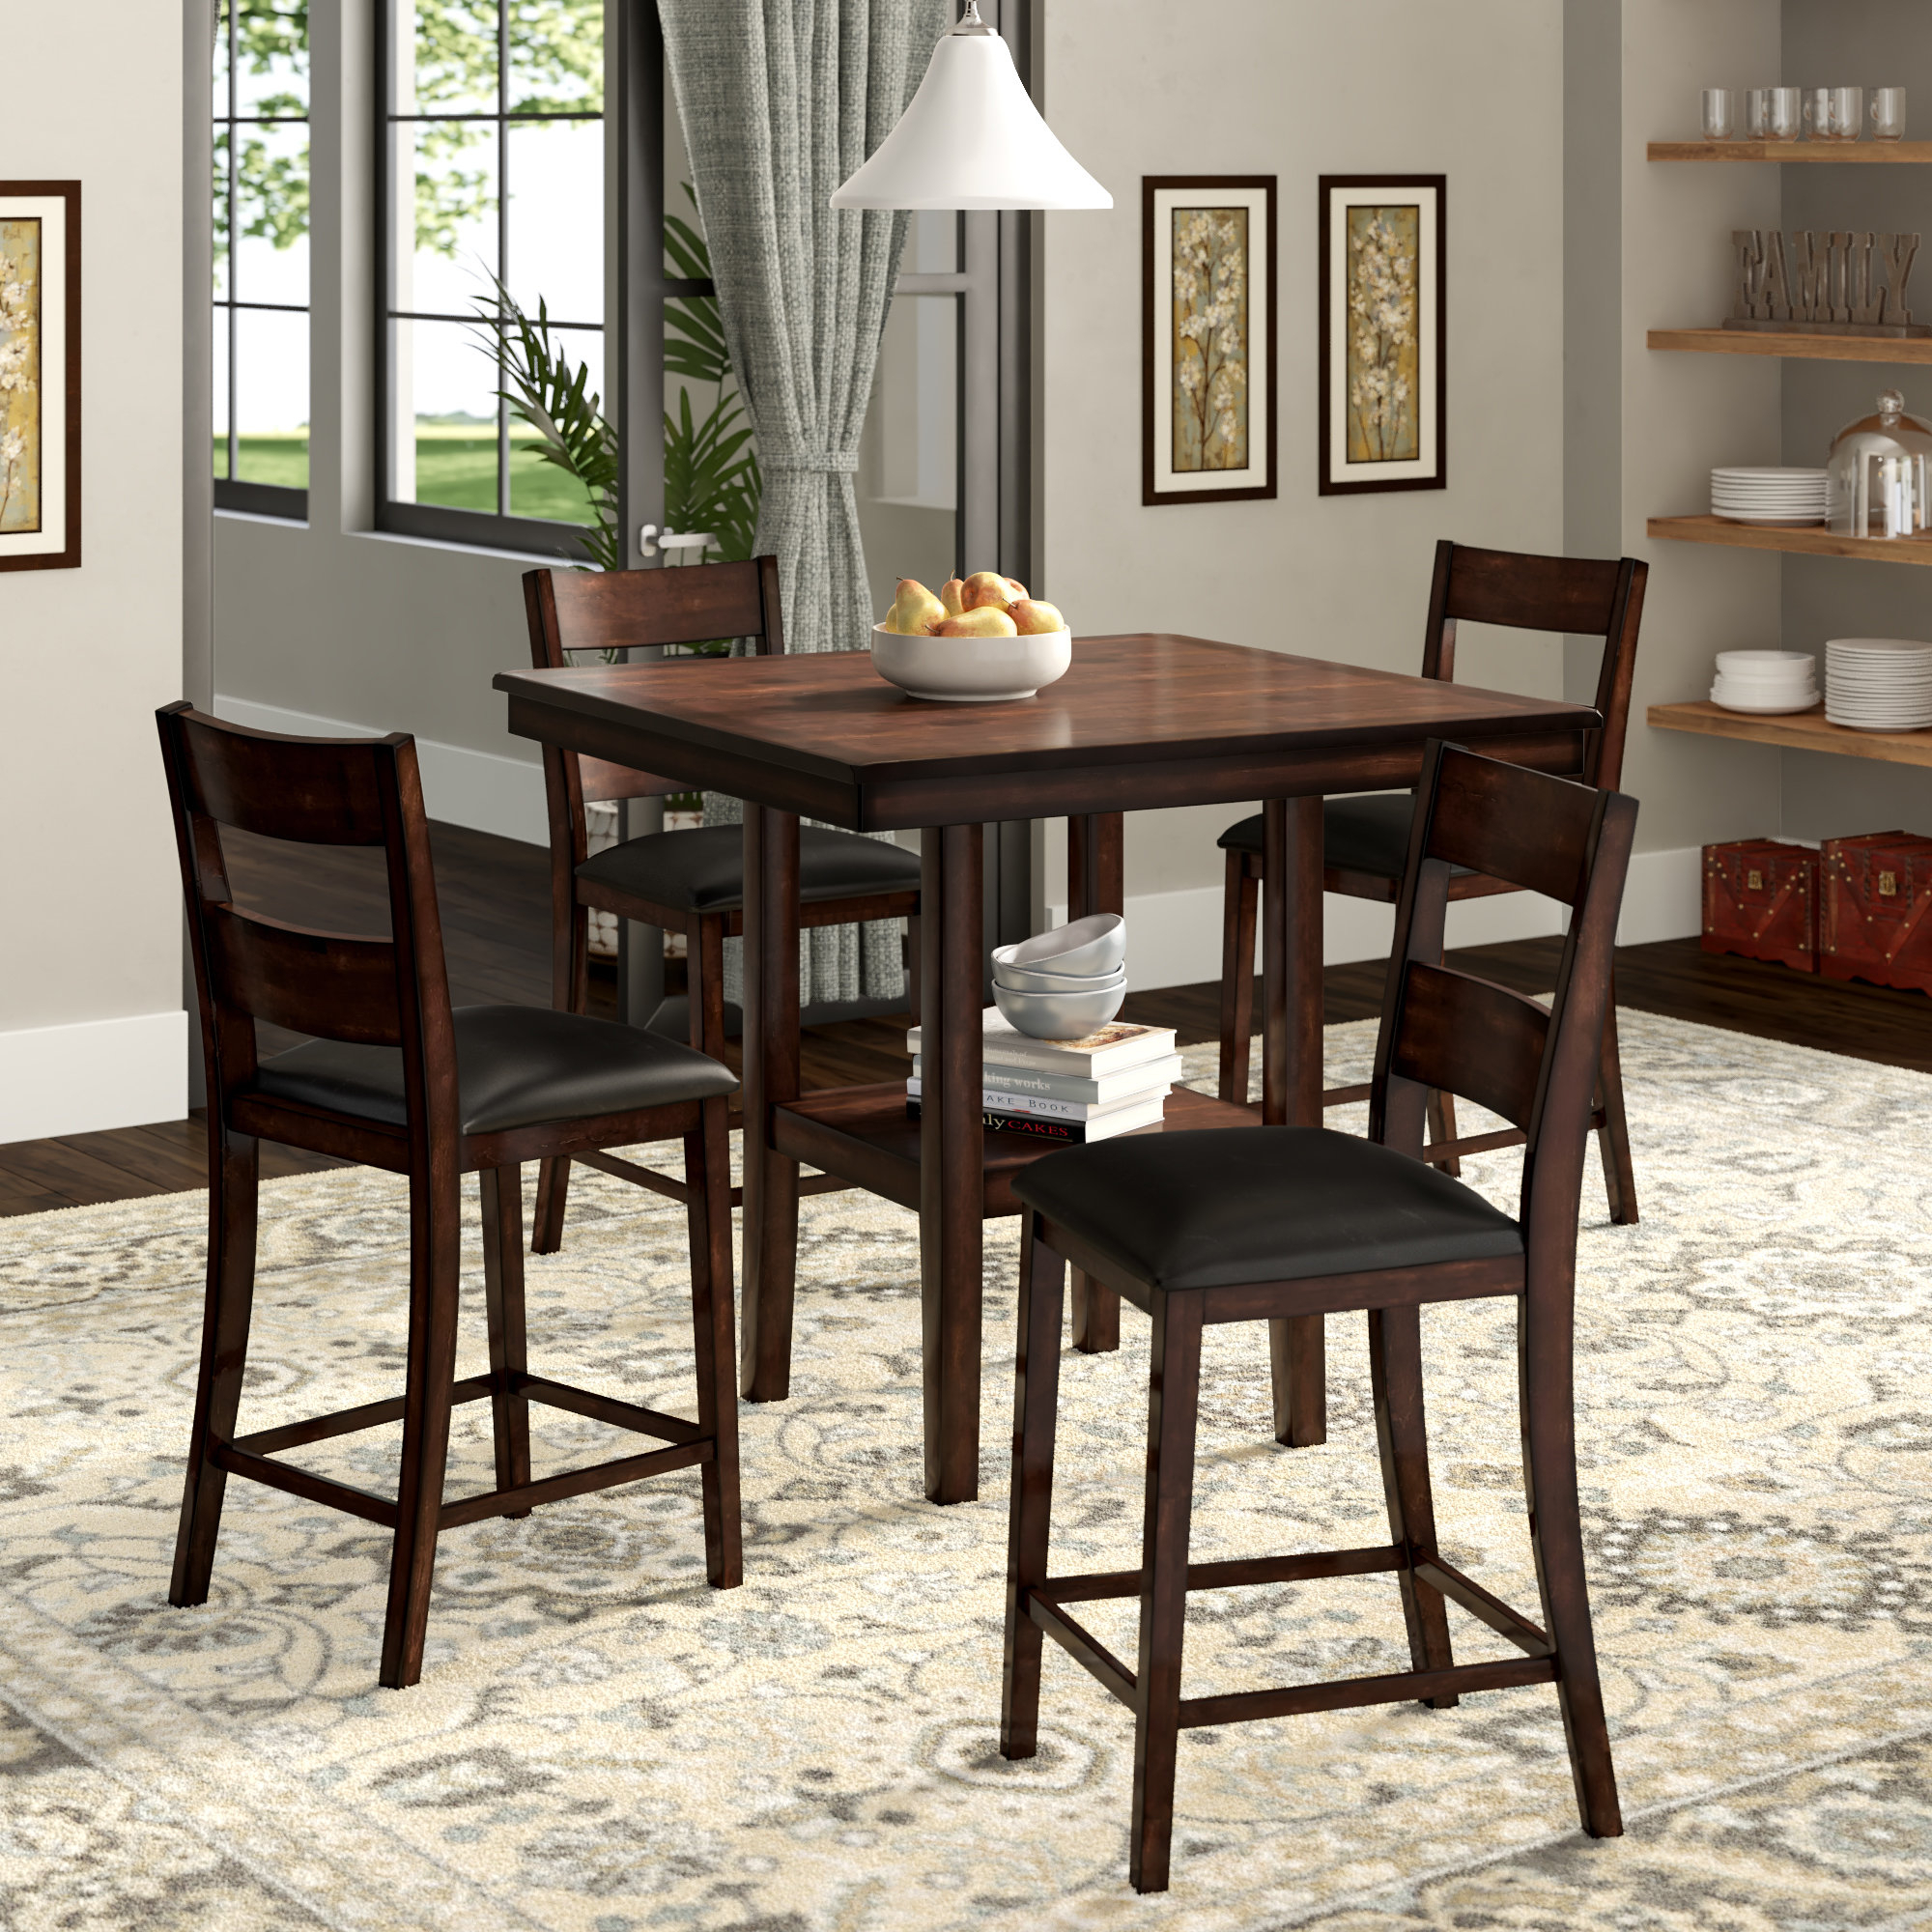 Berrios 3 Piece Counter Height Dining Sets Pertaining To 2019 Winston Porter Juno 5 Piece Counter Height Dining Set & Reviews (#2 of 20)